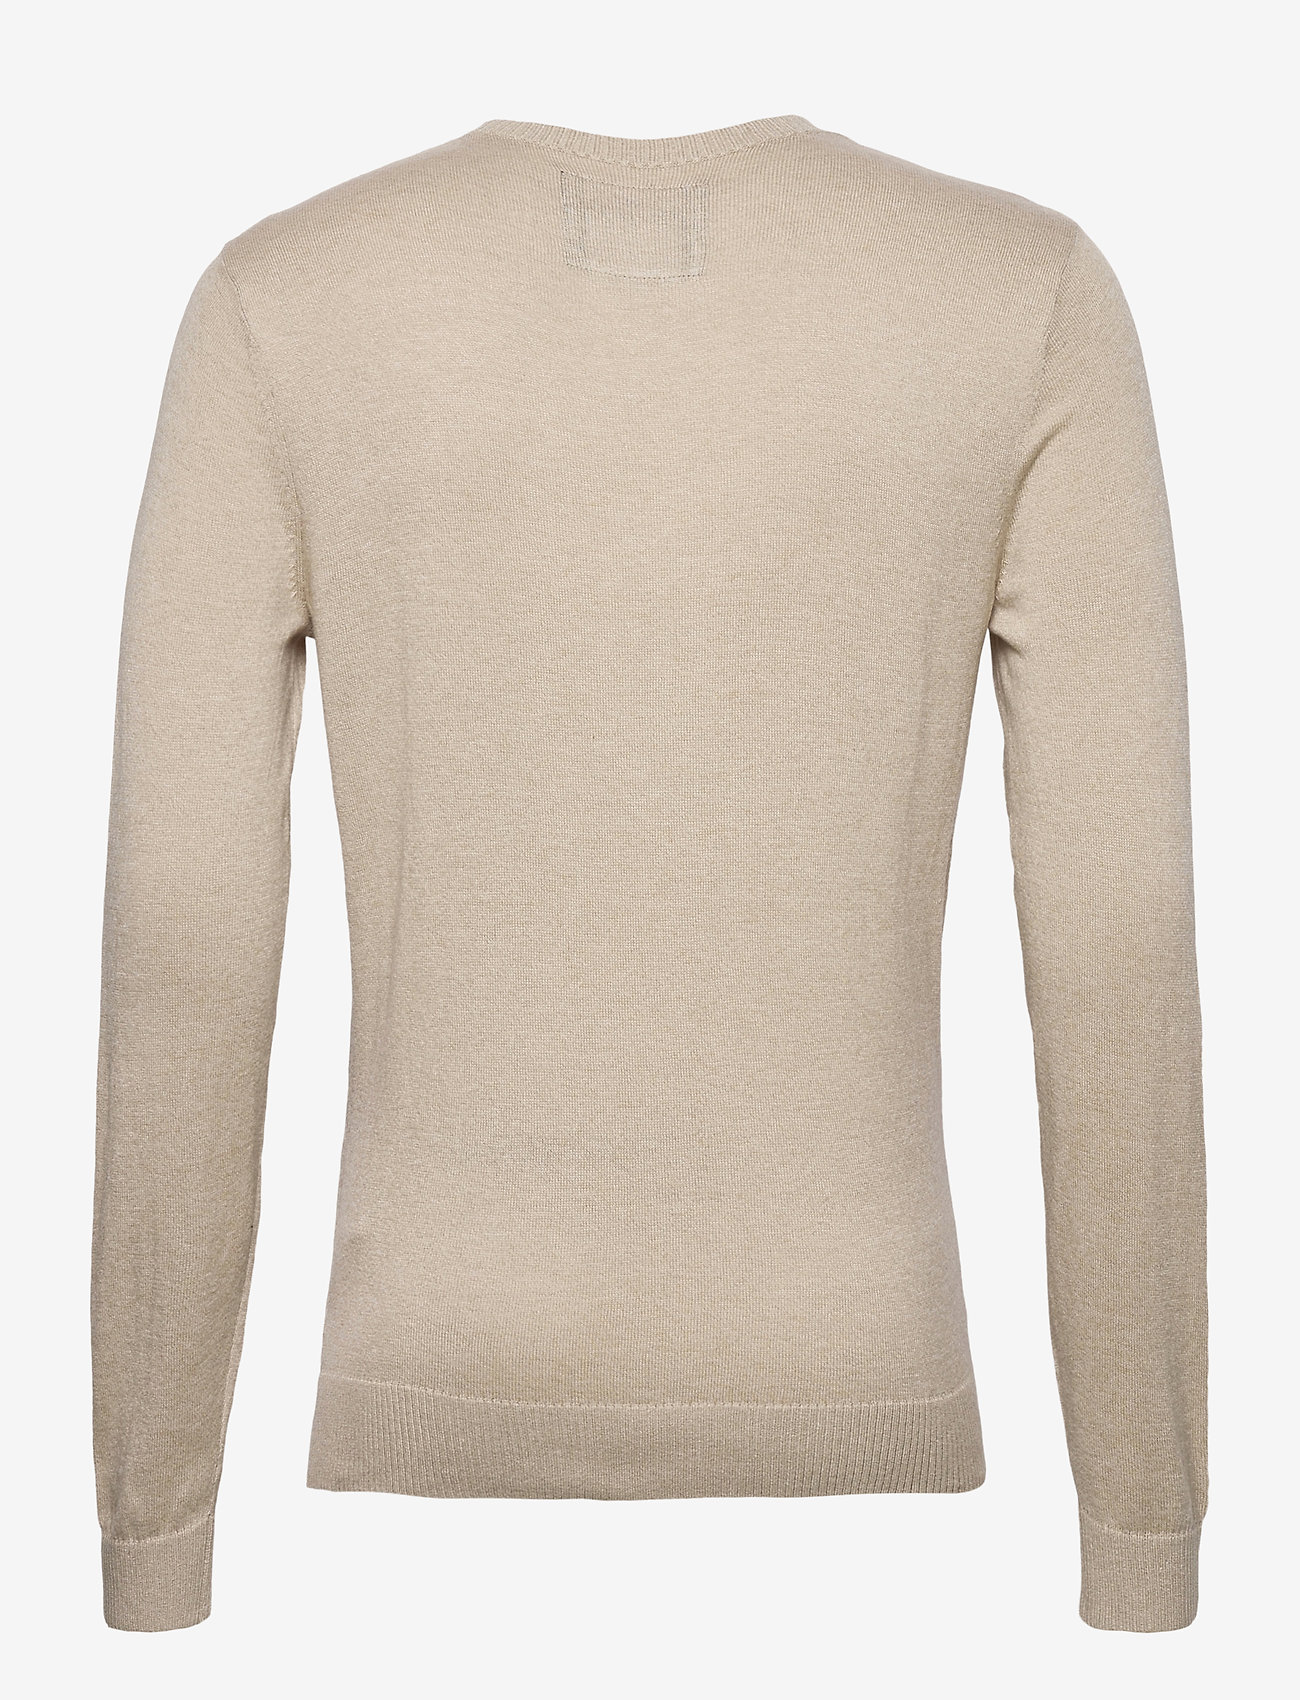 Hollister - HCo. GUYS SWEATERS - tricots basiques - light brown sd/texture - 1